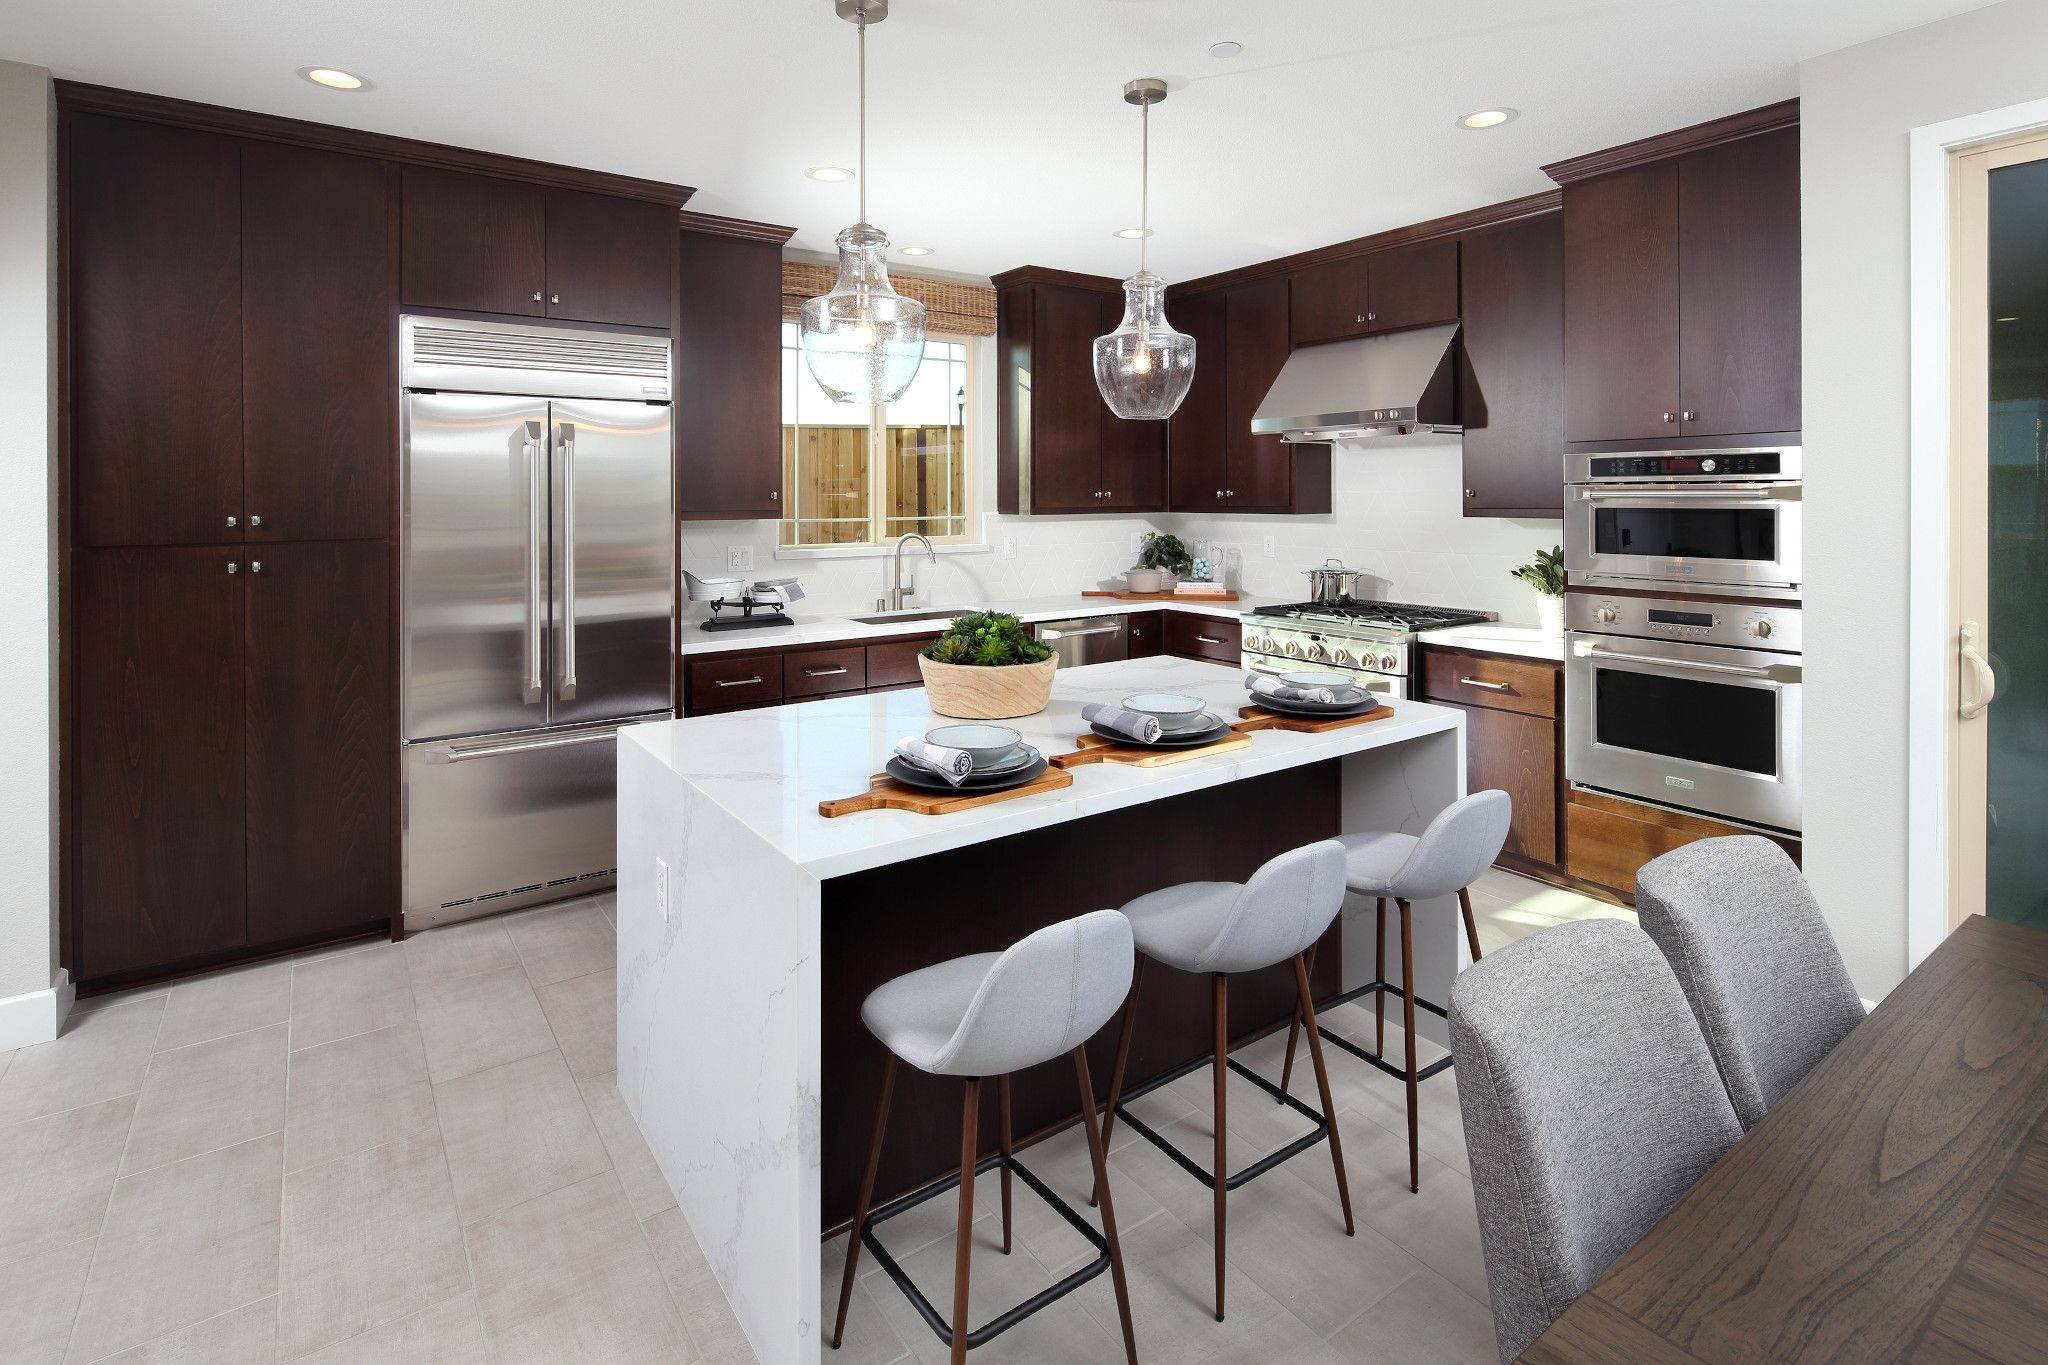 Kitchen featured in the Plan 4 By Shea Homes in Stockton-Lodi, CA